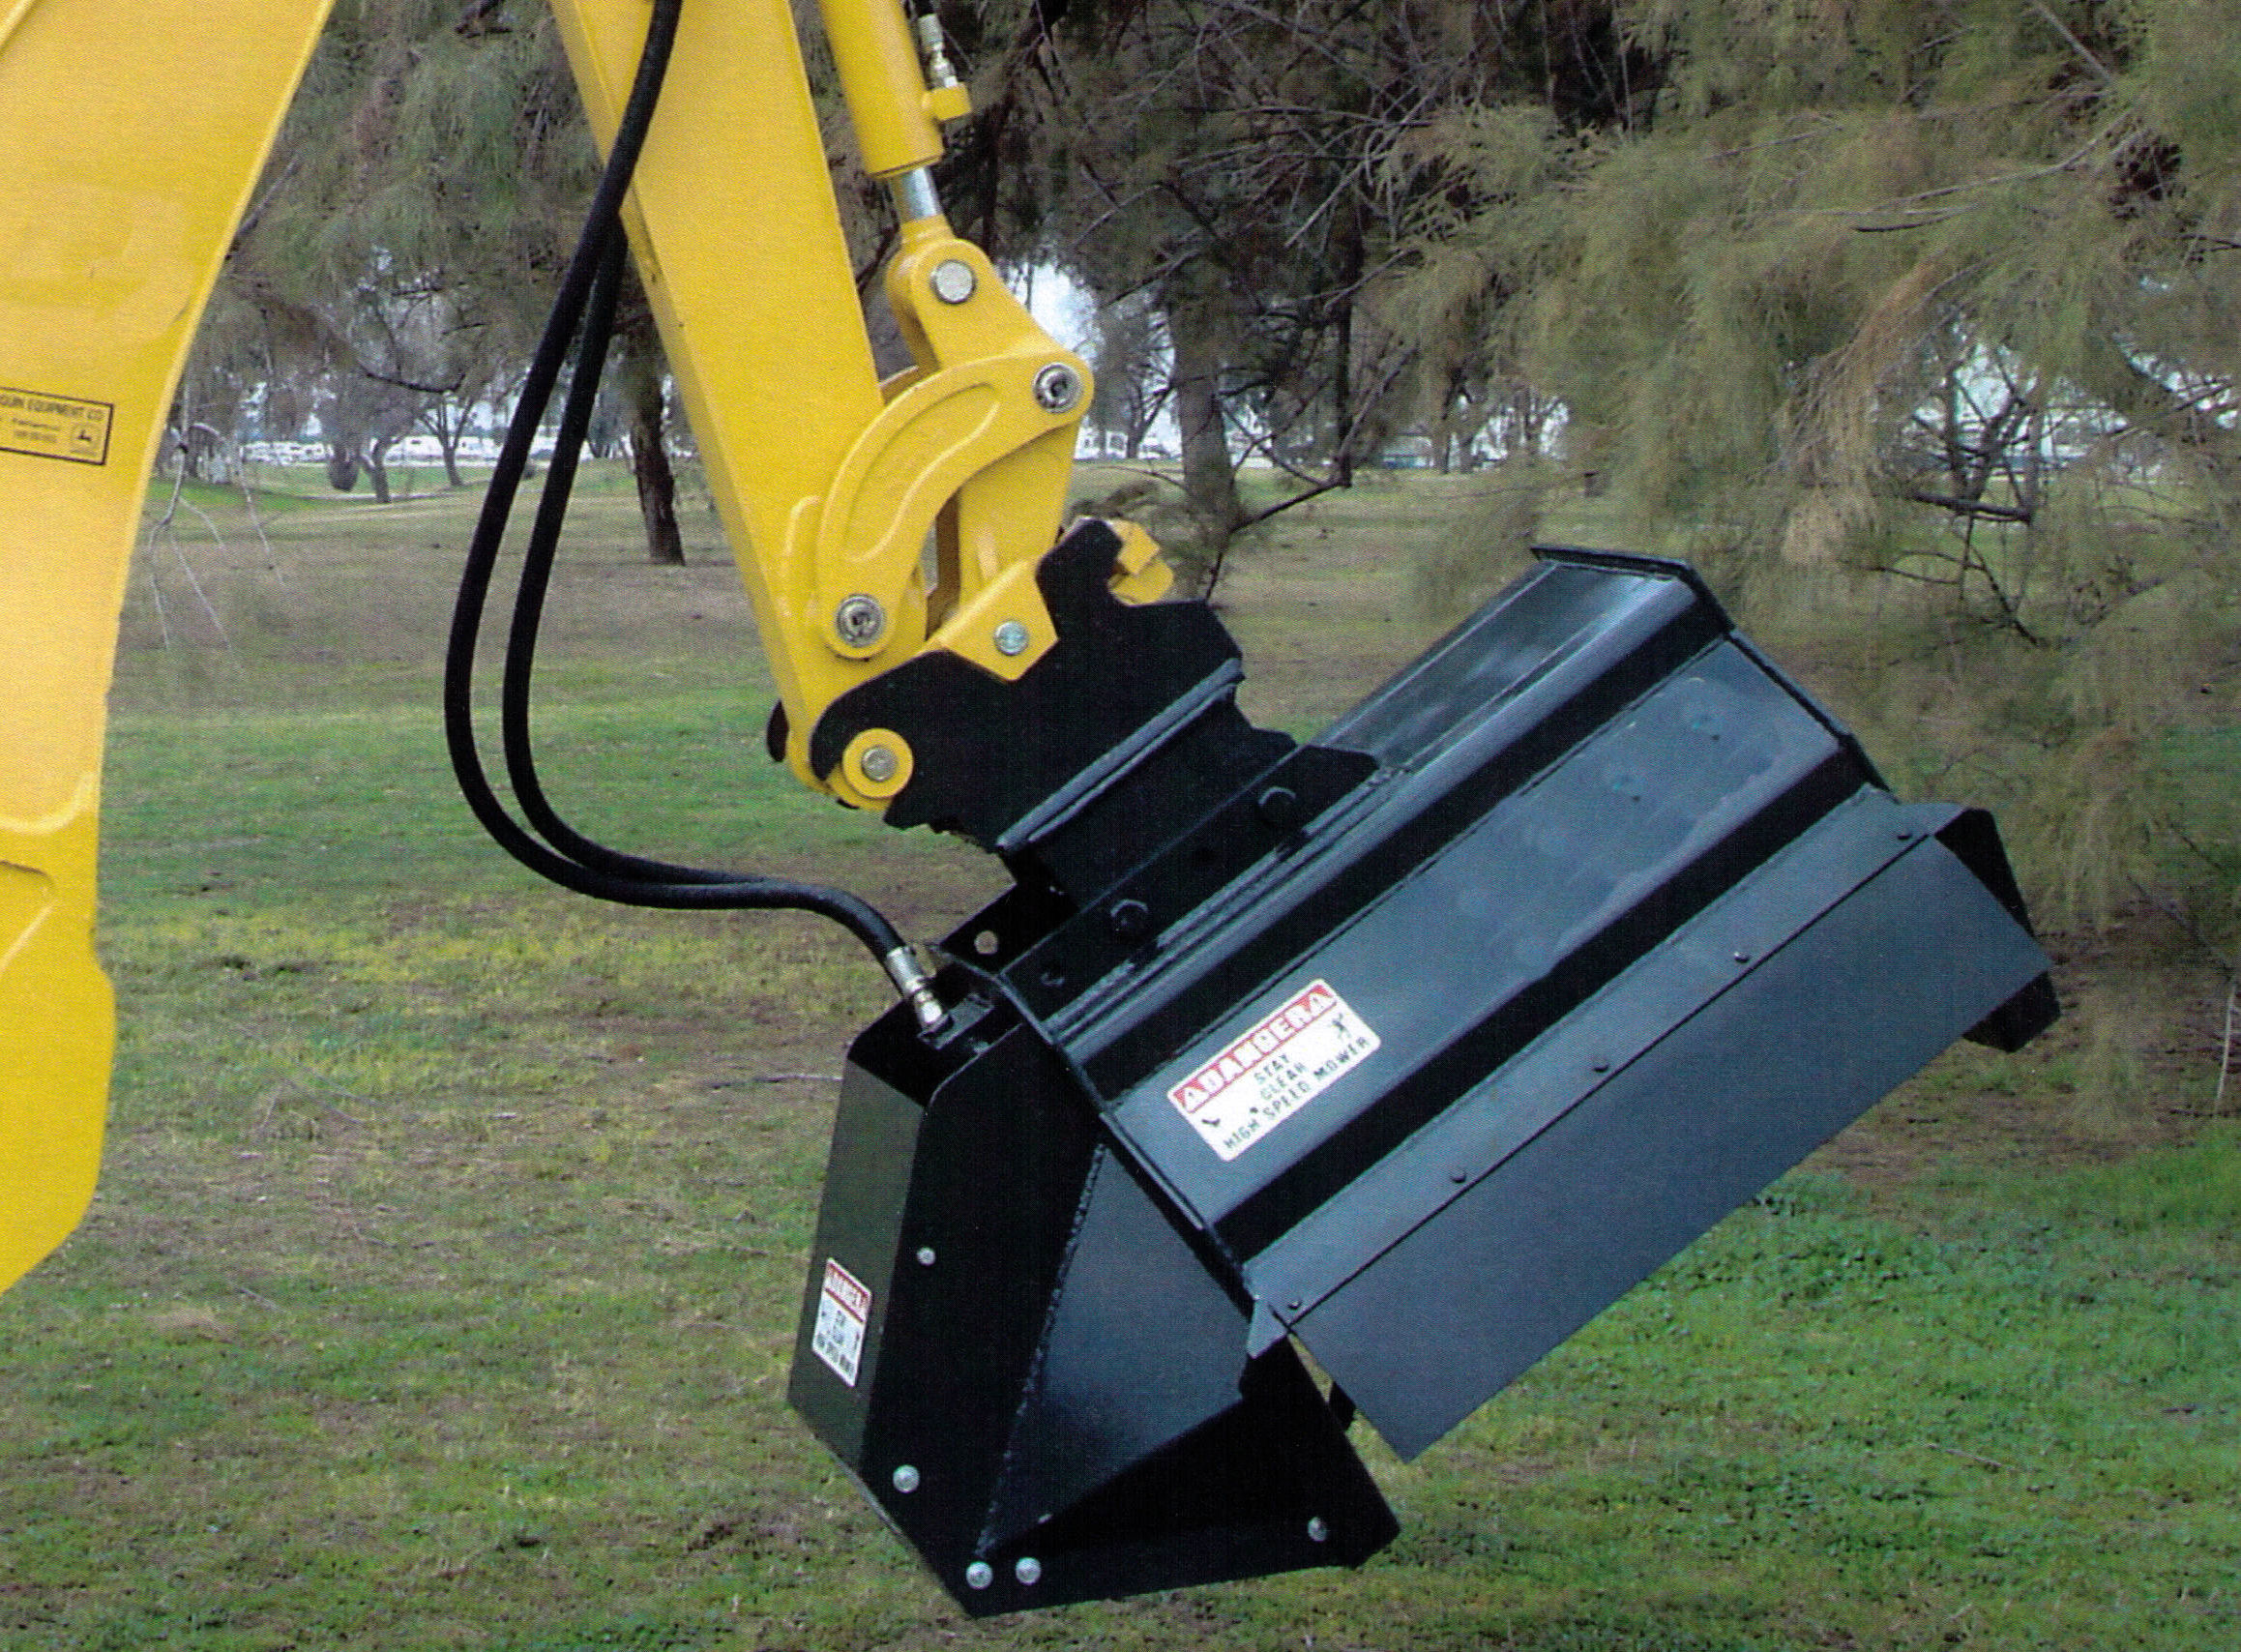 Brush hound excavator mounted brush shredder Hydraulic motor for brush cutter